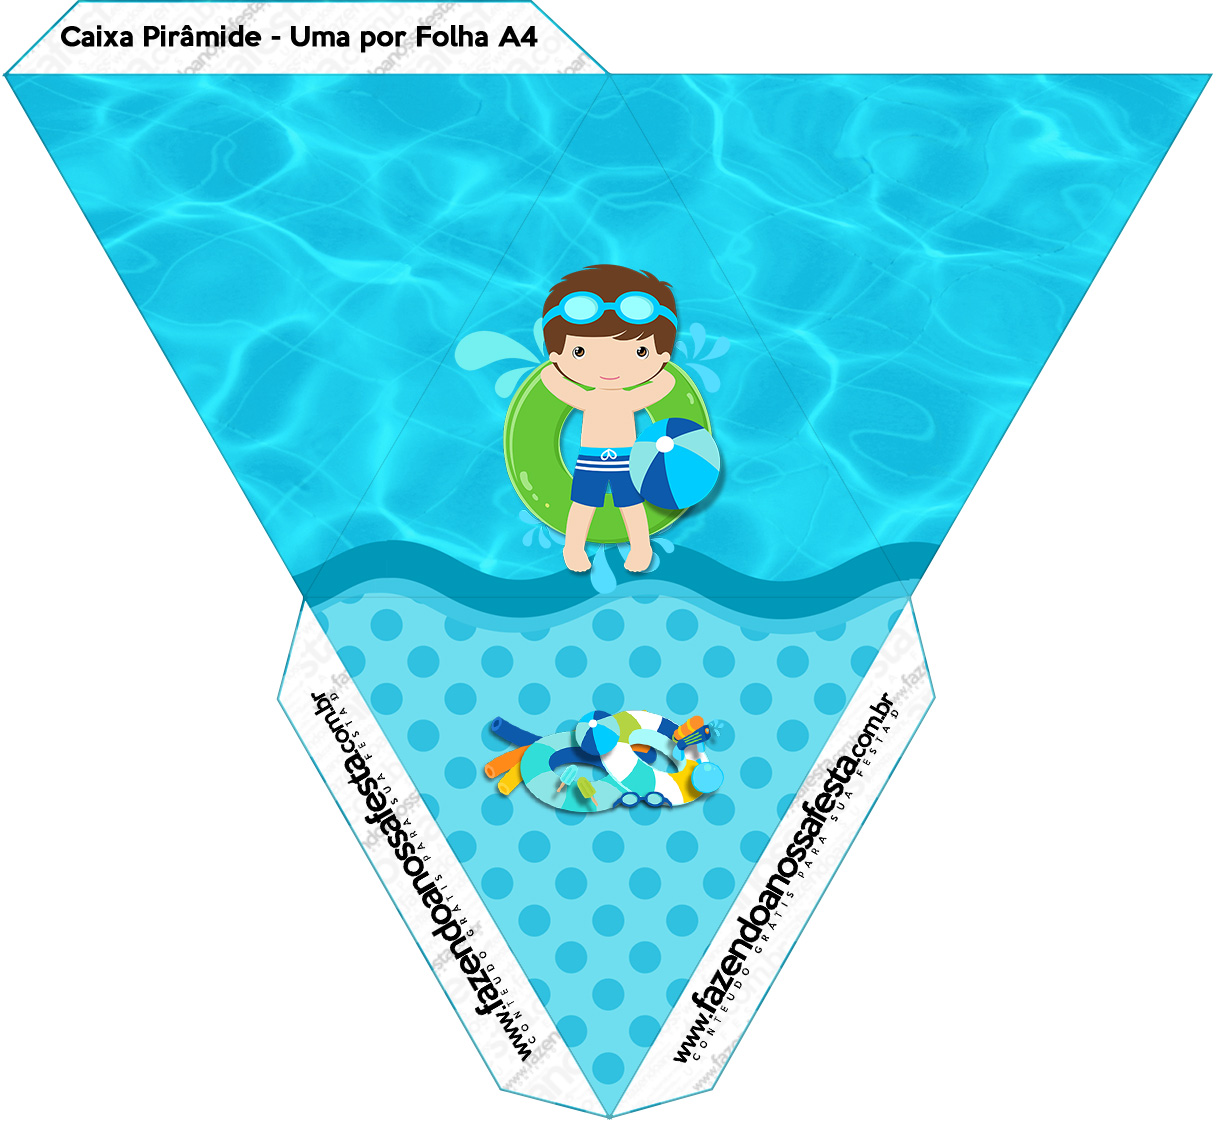 Caixa Piramide Pool Party Menino